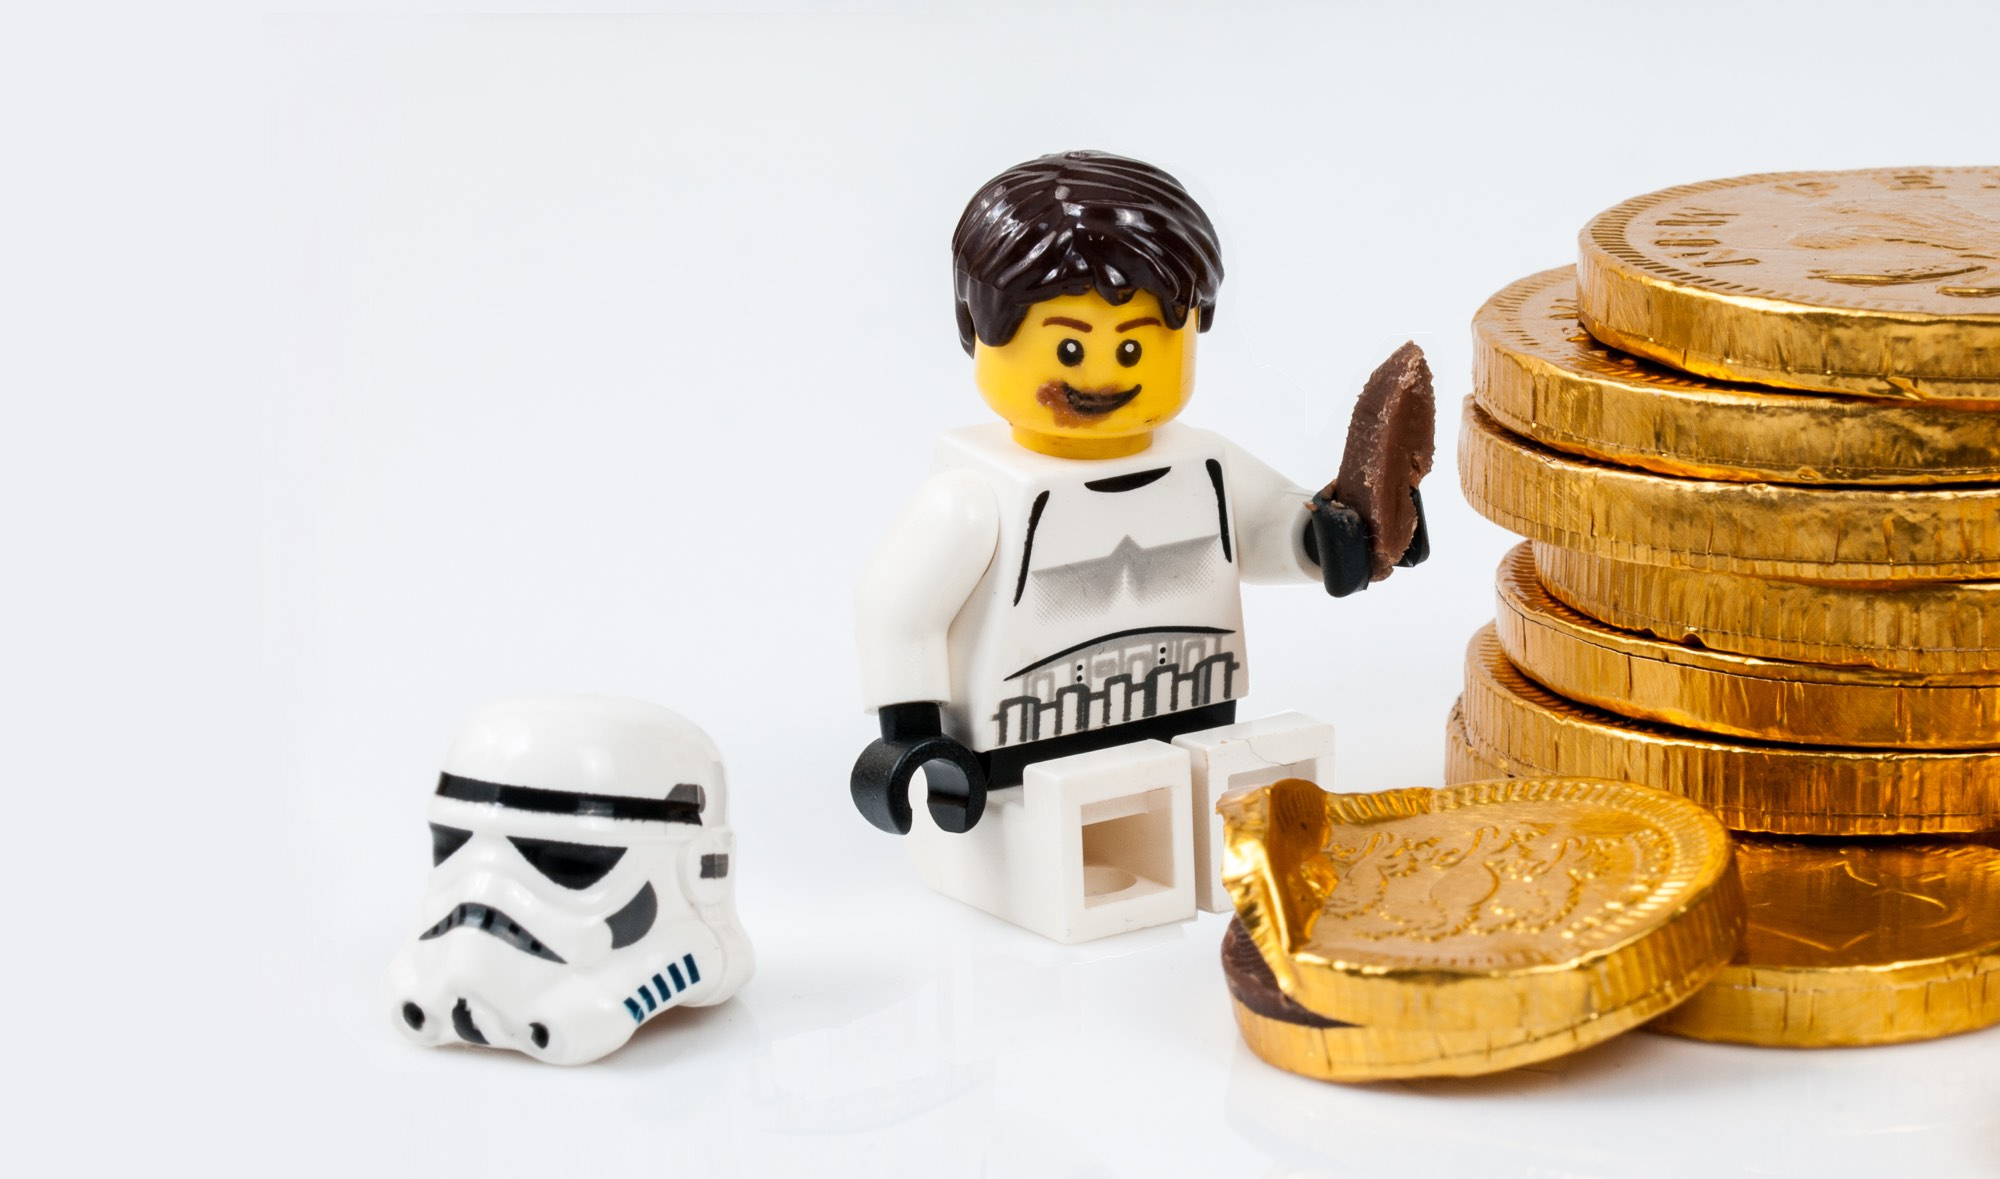 Lego storm trooper eating a chocolate coin